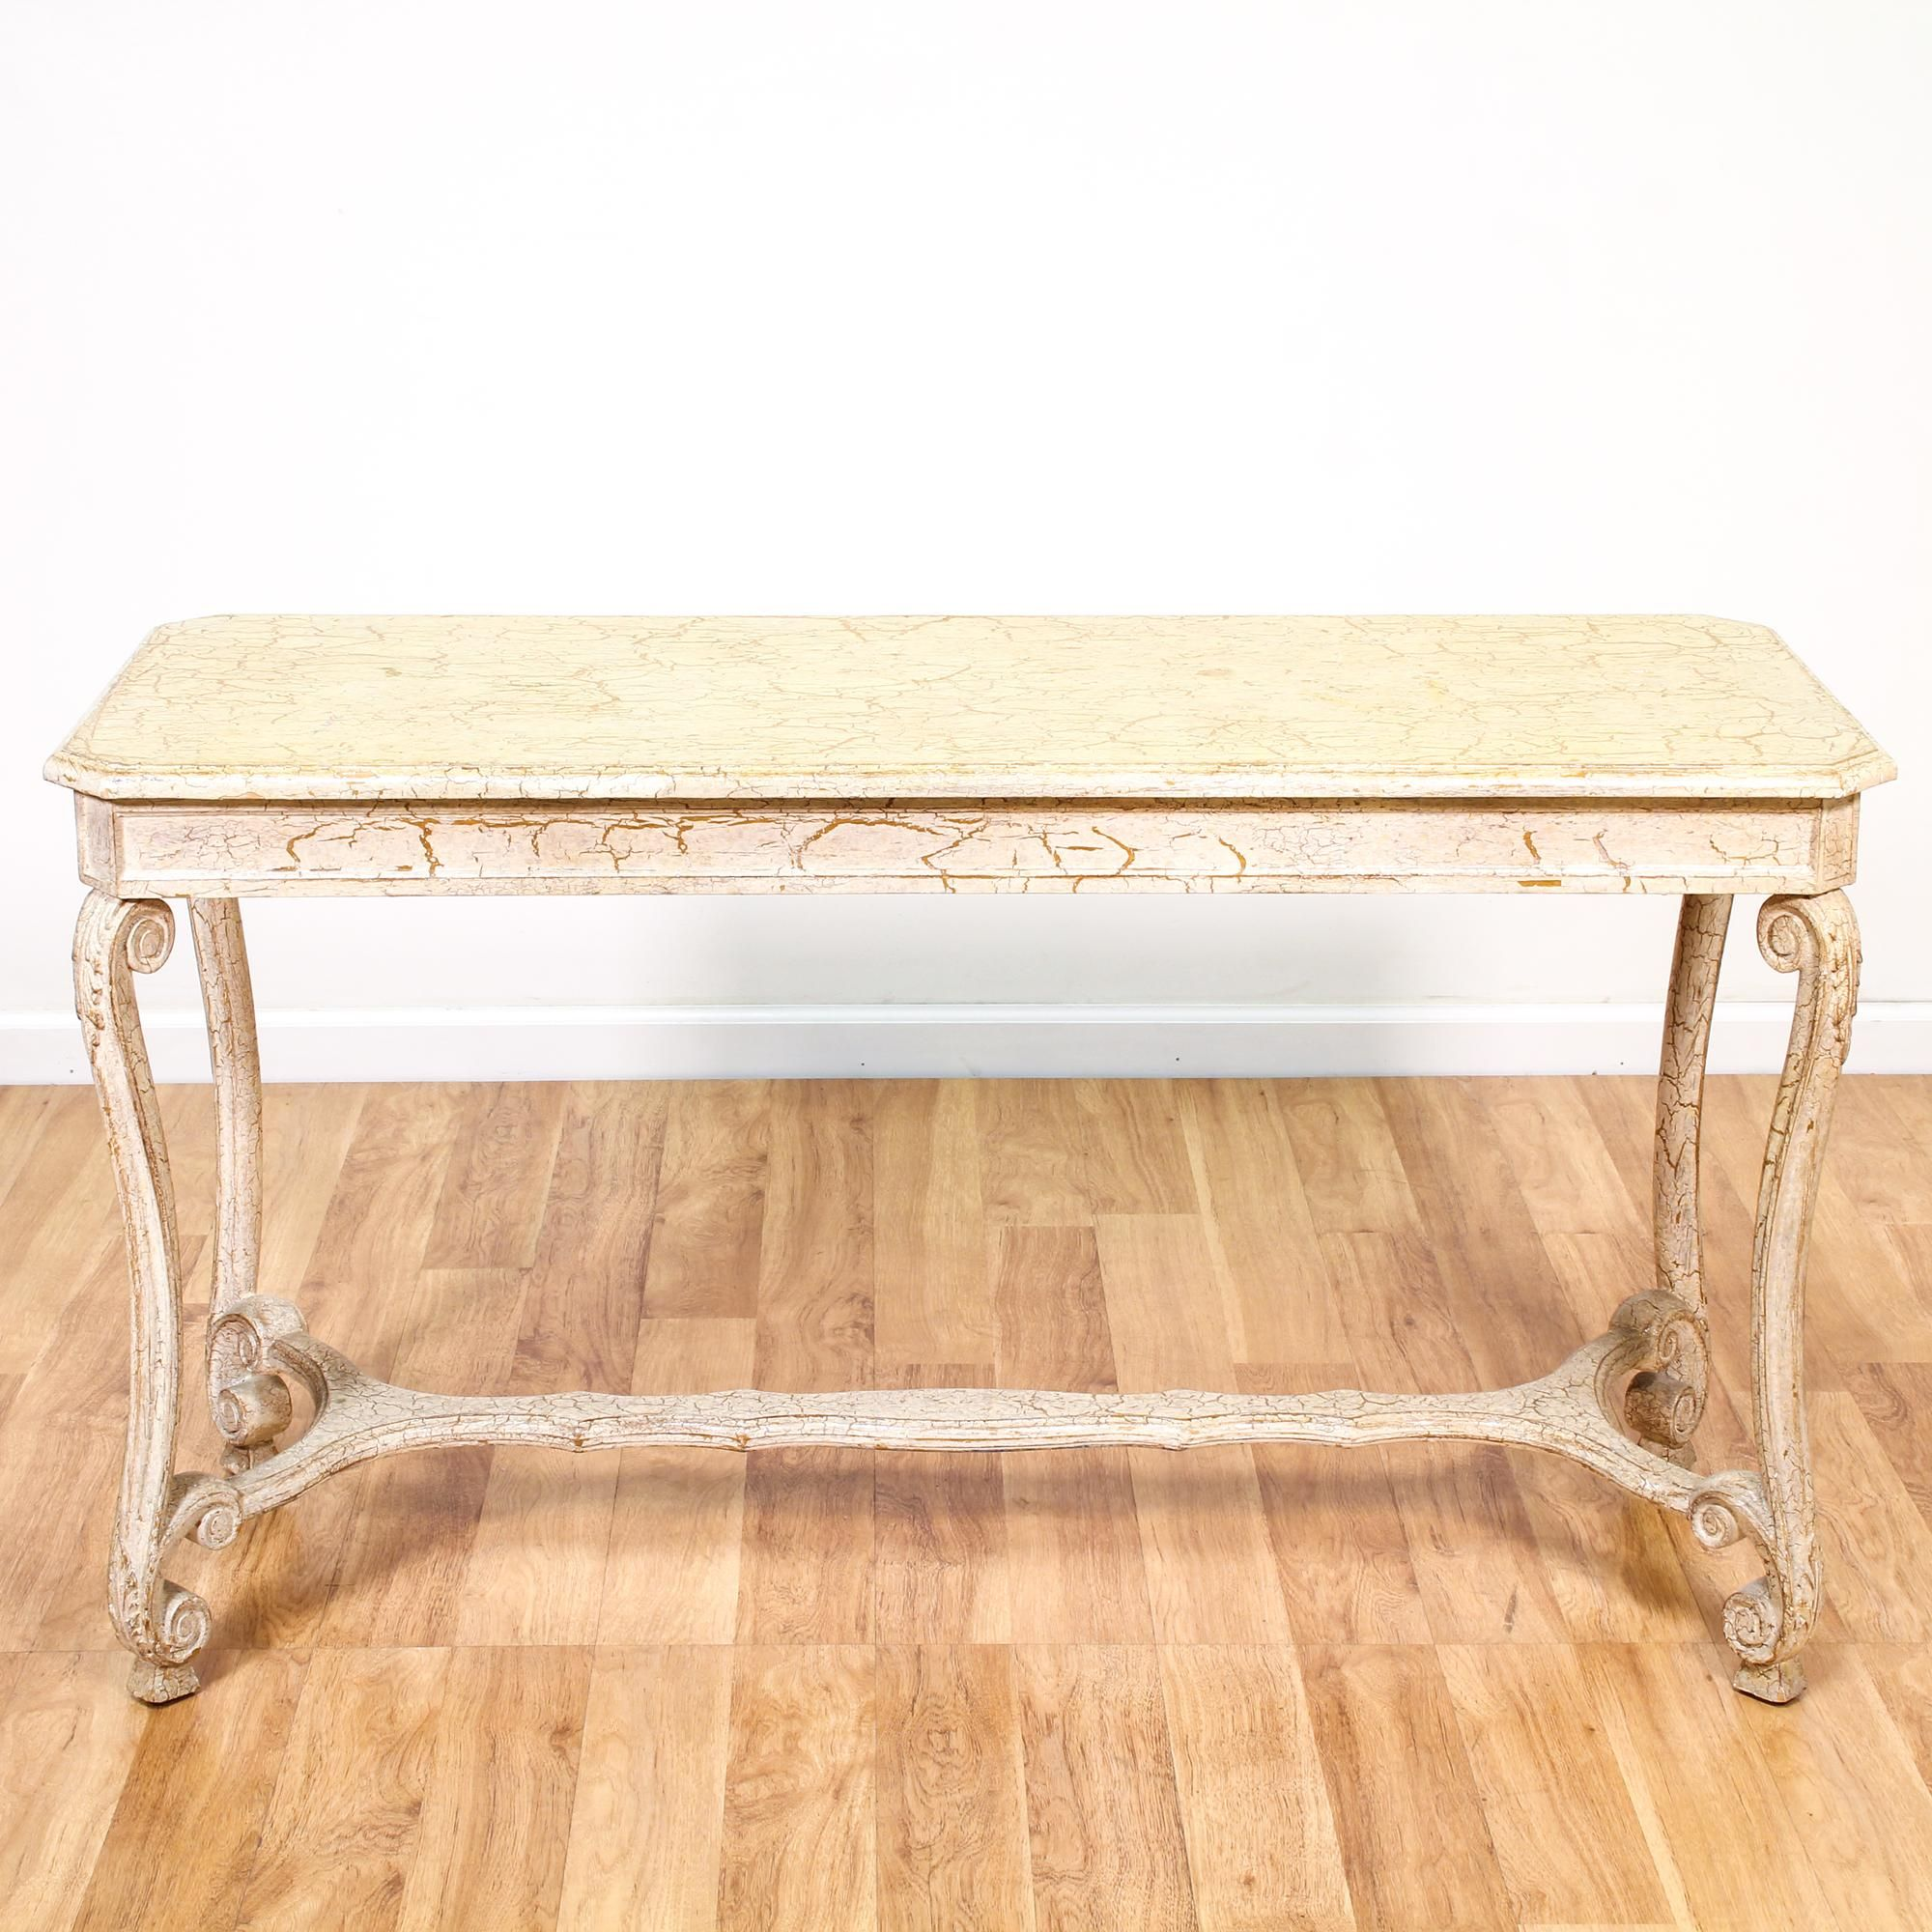 This shabby chic sofa table is featured in a solid wood with a this shabby chic sofa table is featured in a solid wood with a crackled cream finish geotapseo Images